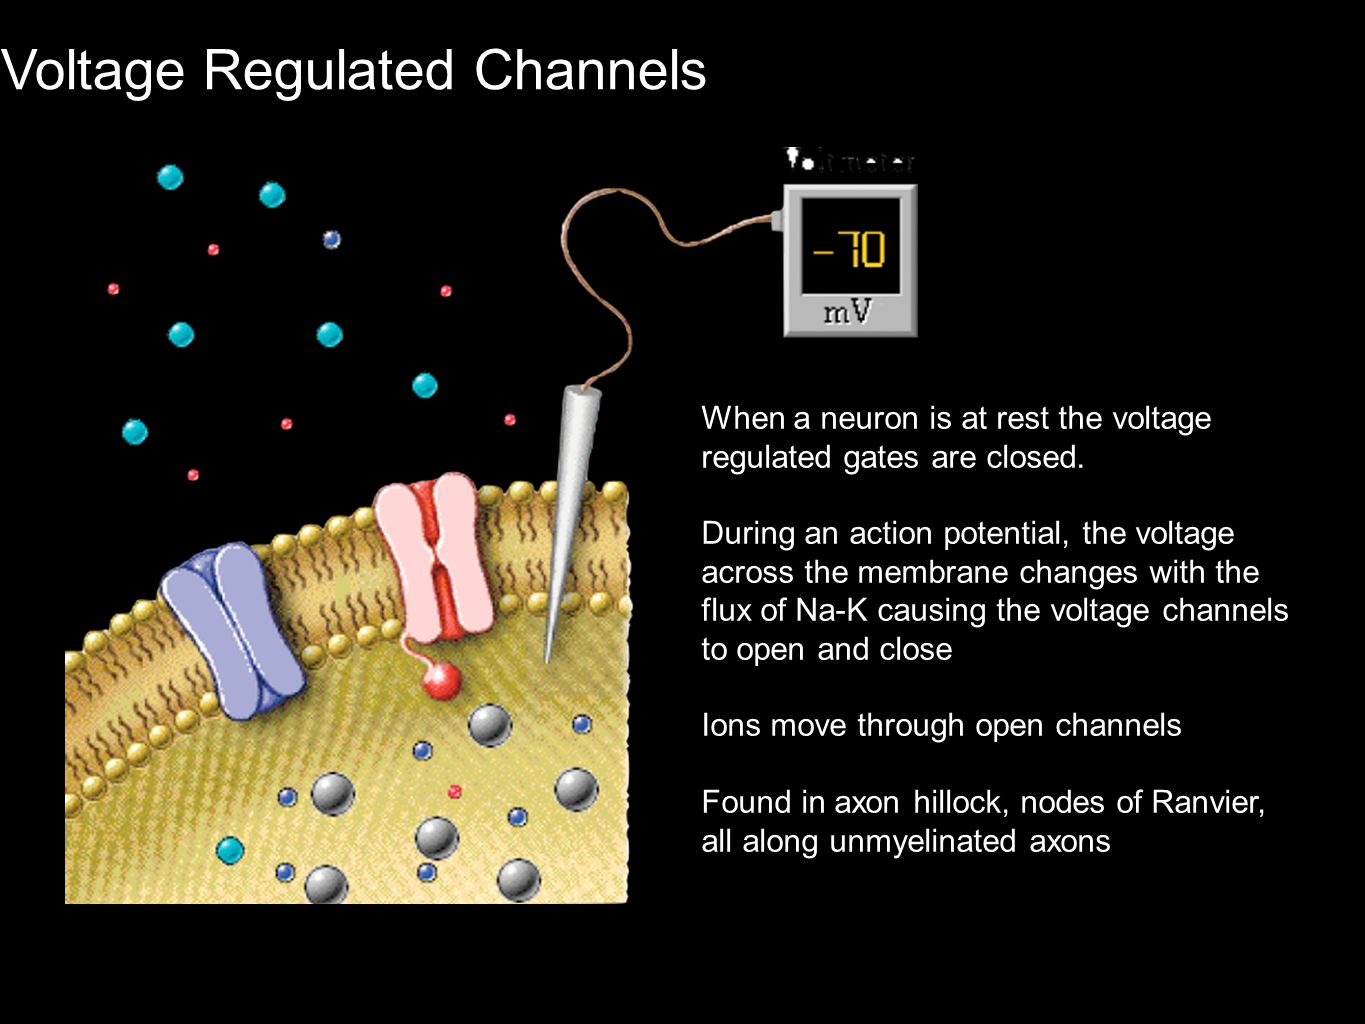 Voltage Regulated Channels When a neuron is at rest the voltage regulated gates are closed. During an action potential, the voltage across the membran